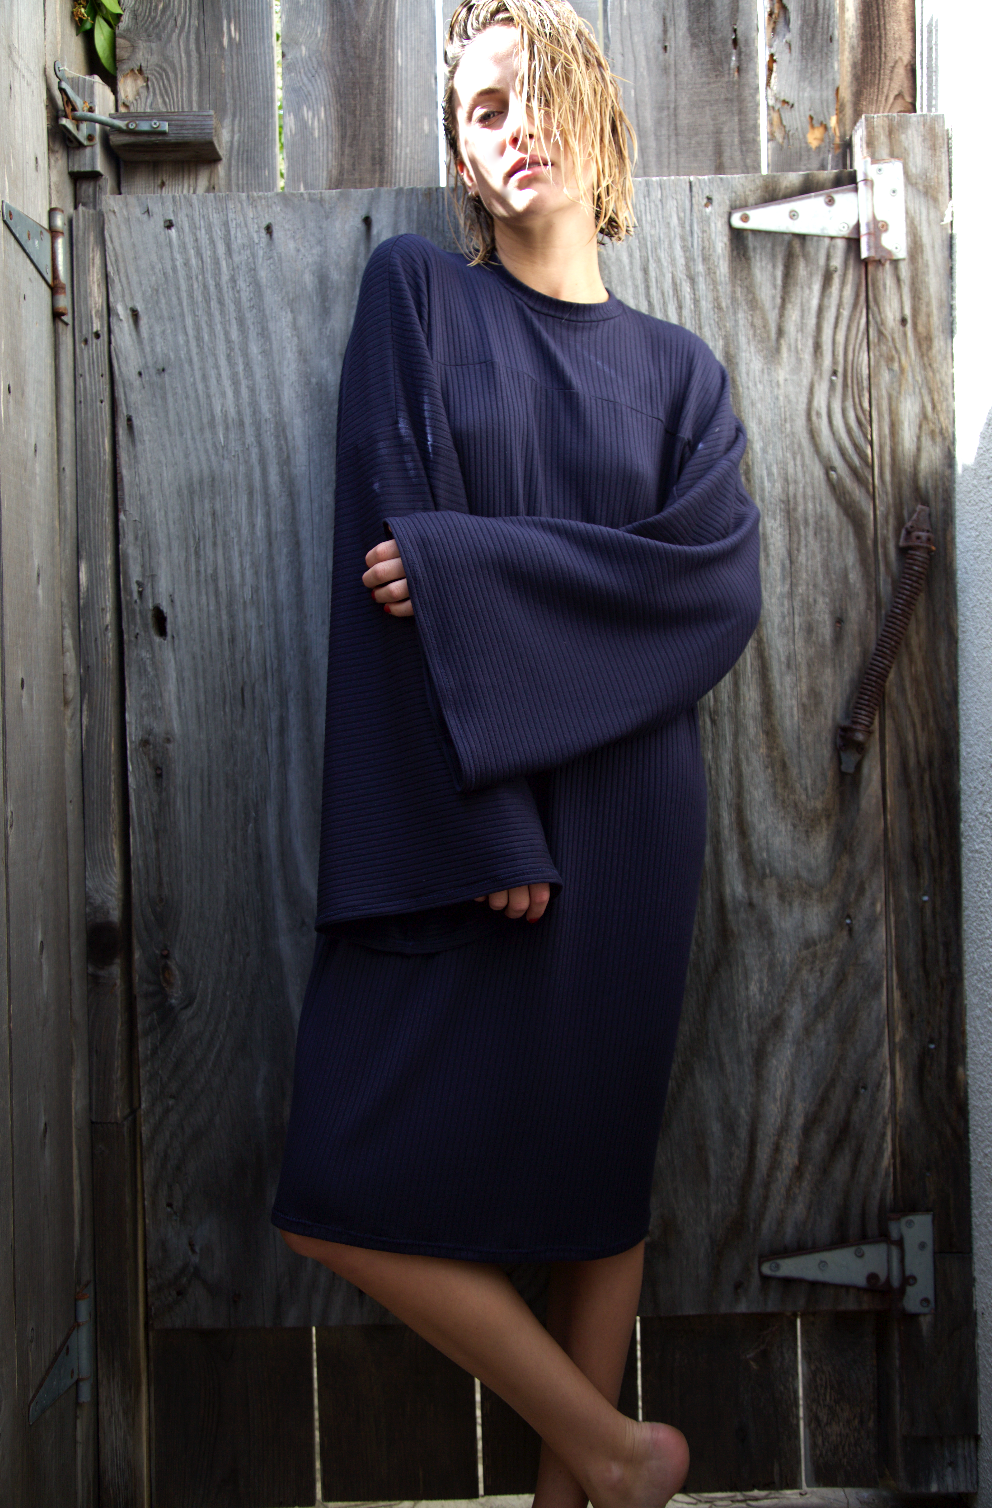 STYLE #0.001  - L/S SHIFT$150 + SHIPPINGCOLOR: STOCK (NAVY)SIZE: O/SFABRIC: HEAVY MODAL SPANDEXSTITCH: 5X3 RIB